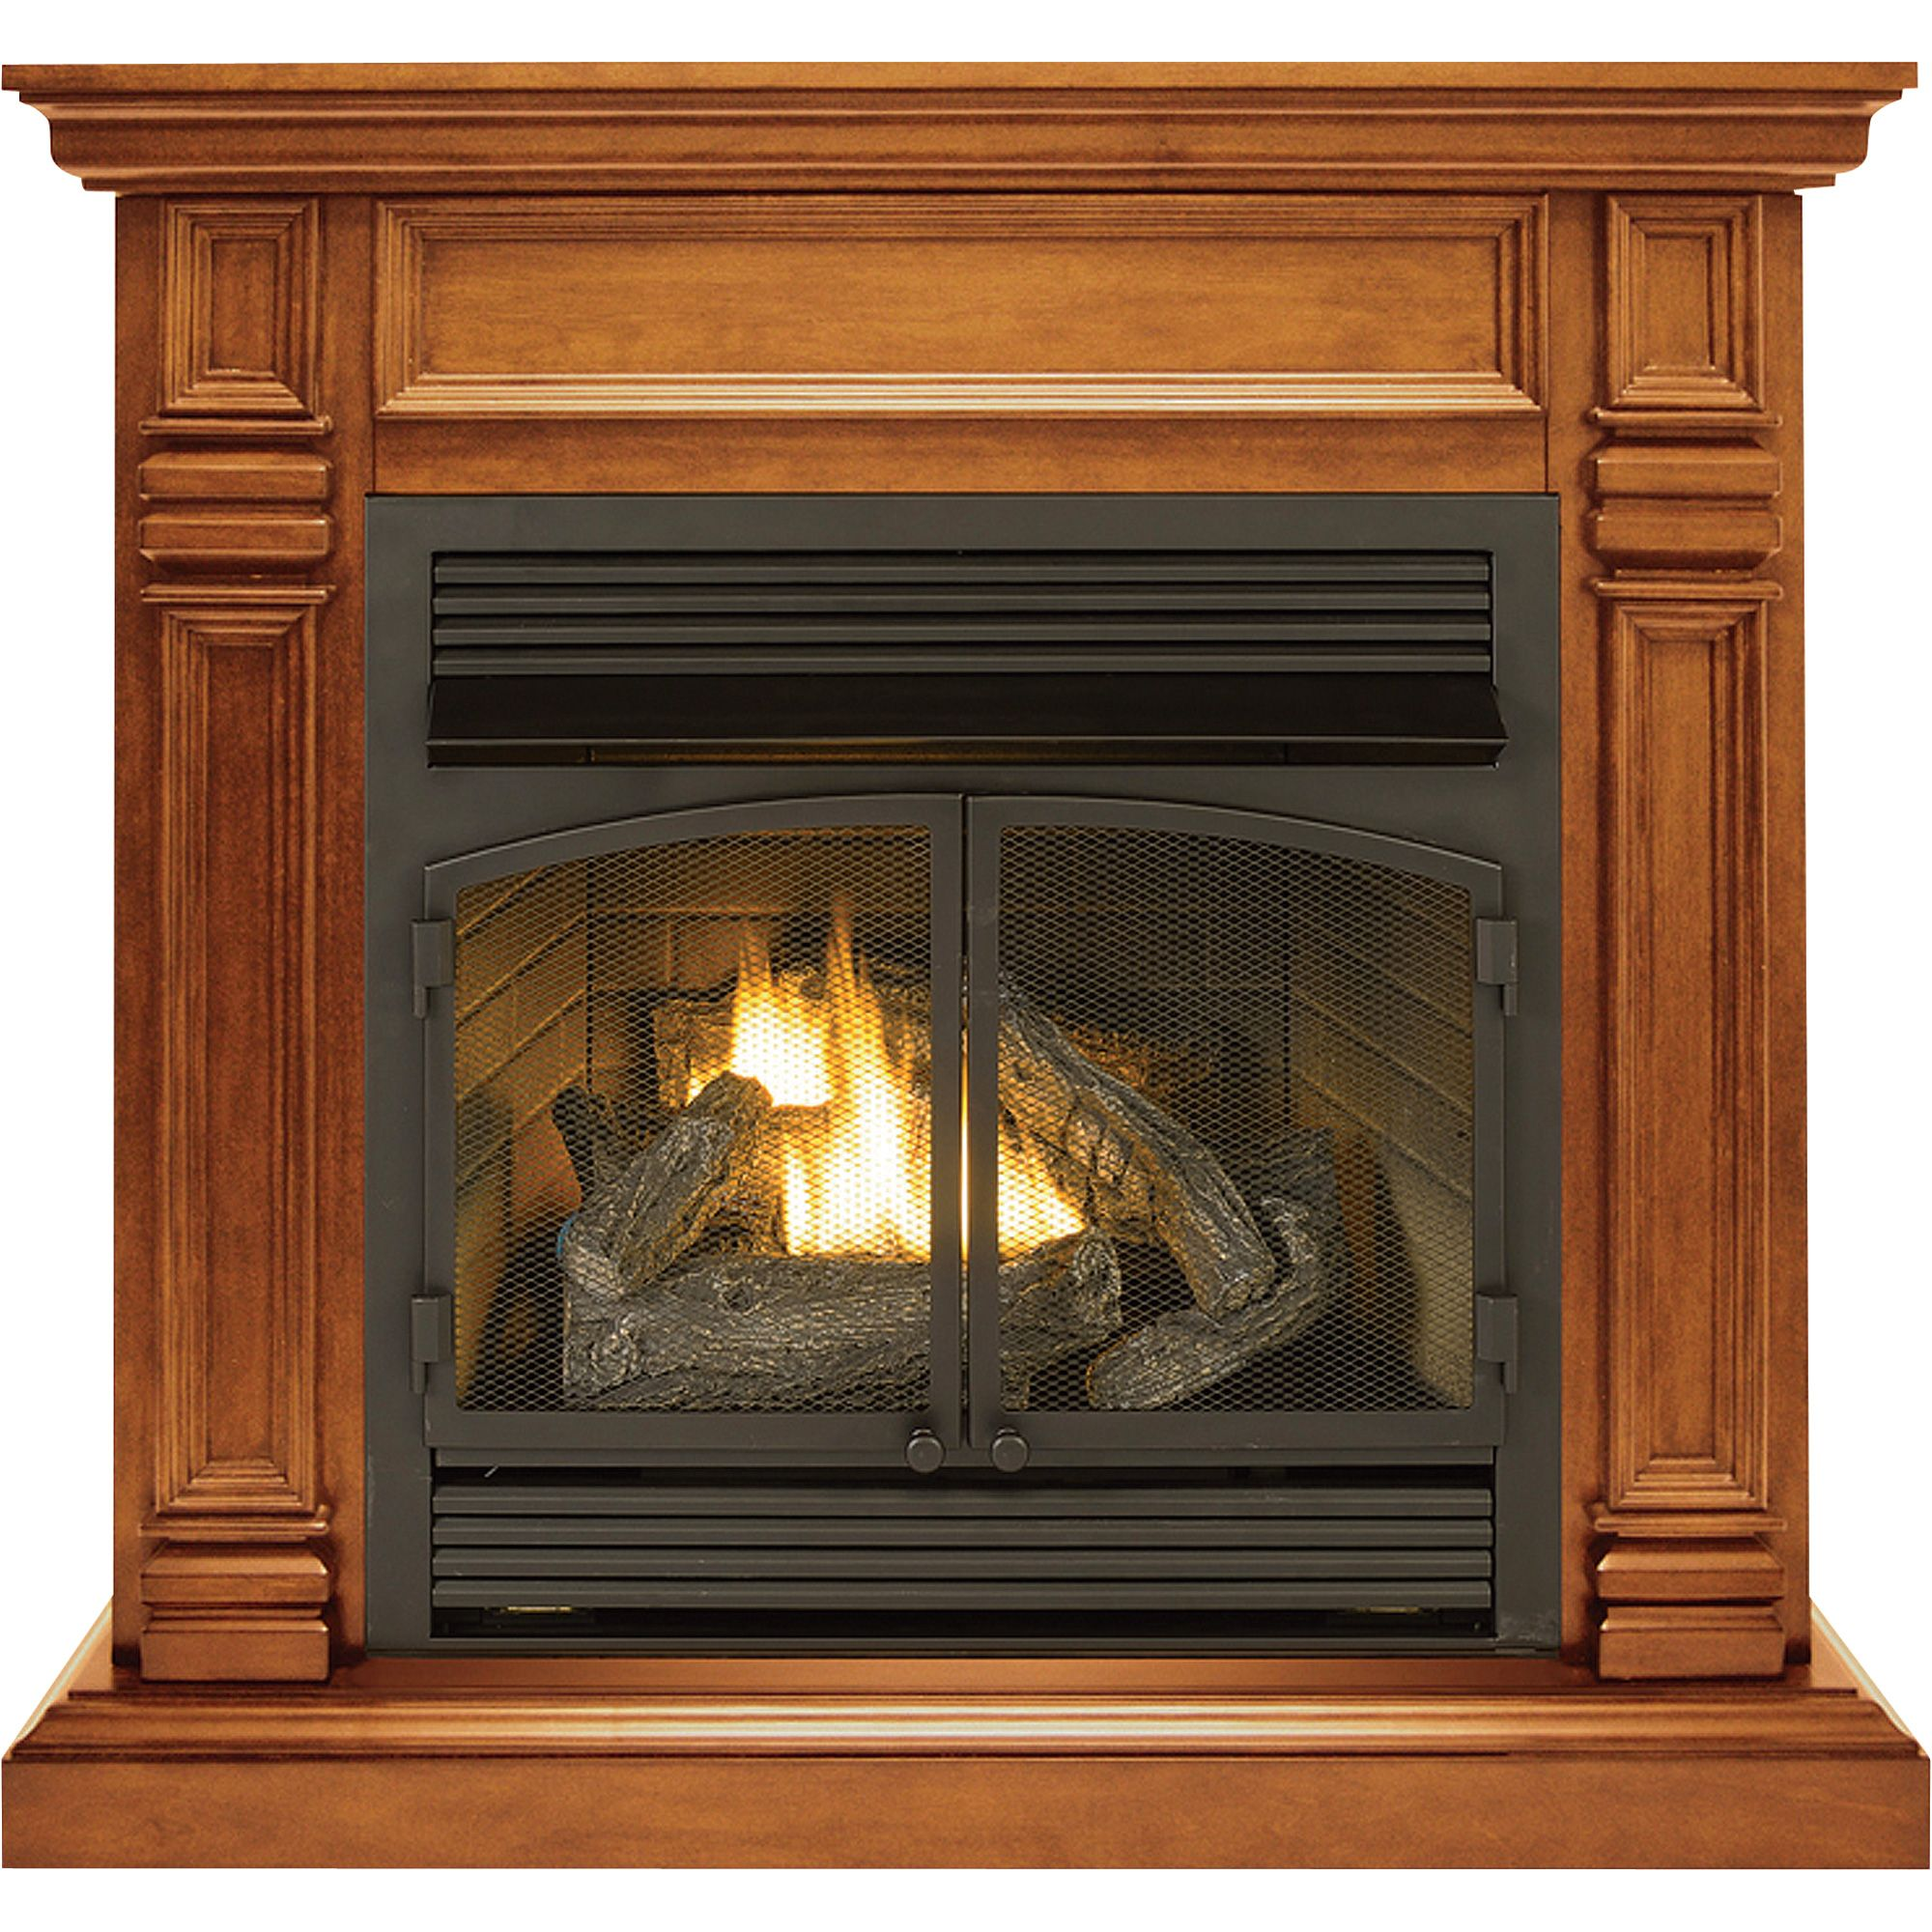 Procom Dual Fuel Vent Free Fireplace 32 000 Btu Apple Spice